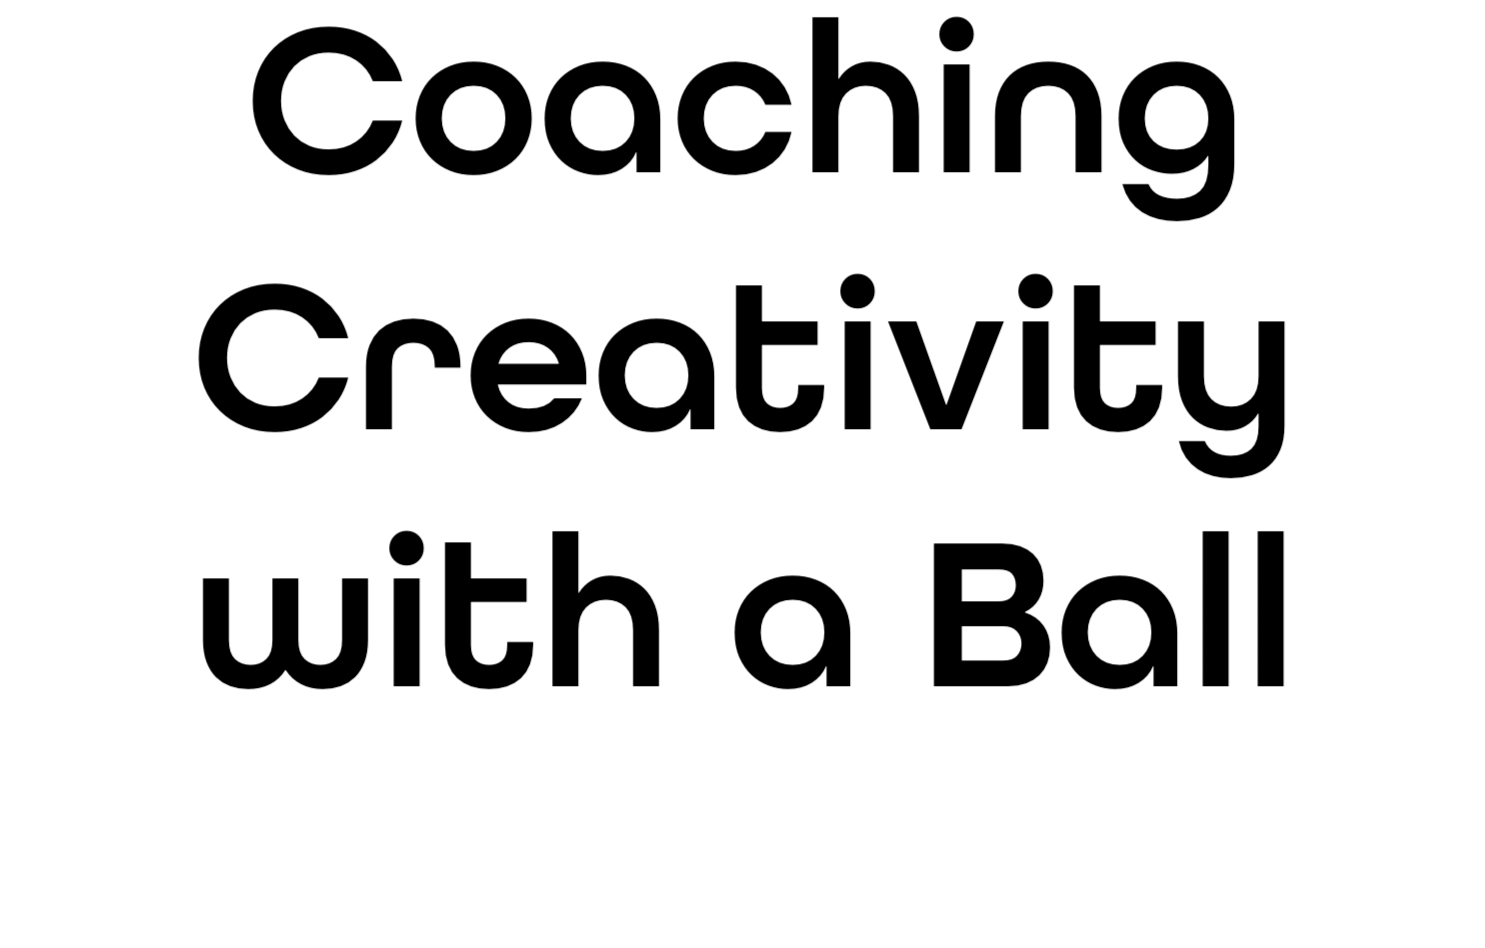 SoulBall - Coaching Creativity with a Ball